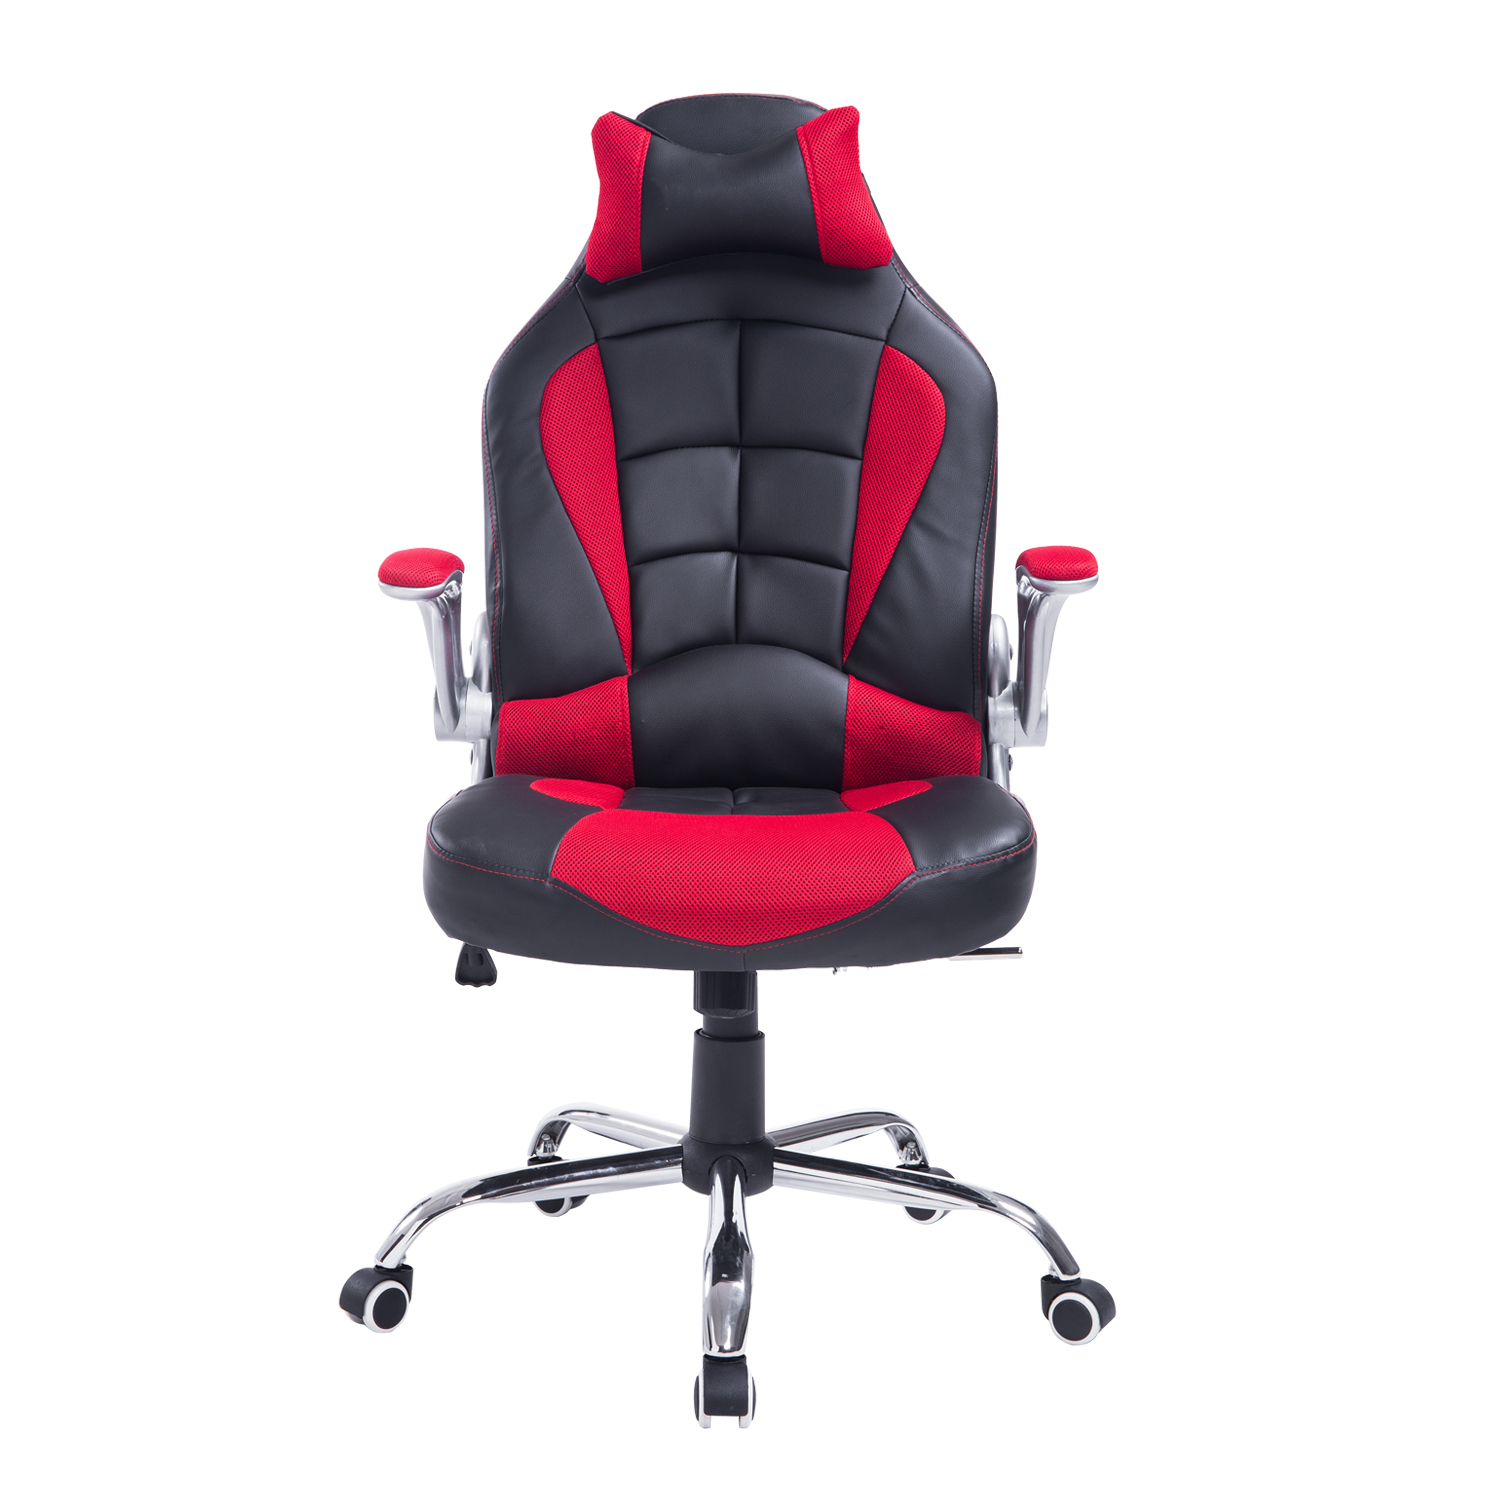 Etonnant HomCom Racing Style Executive Gaming Office Chair   Black And Red